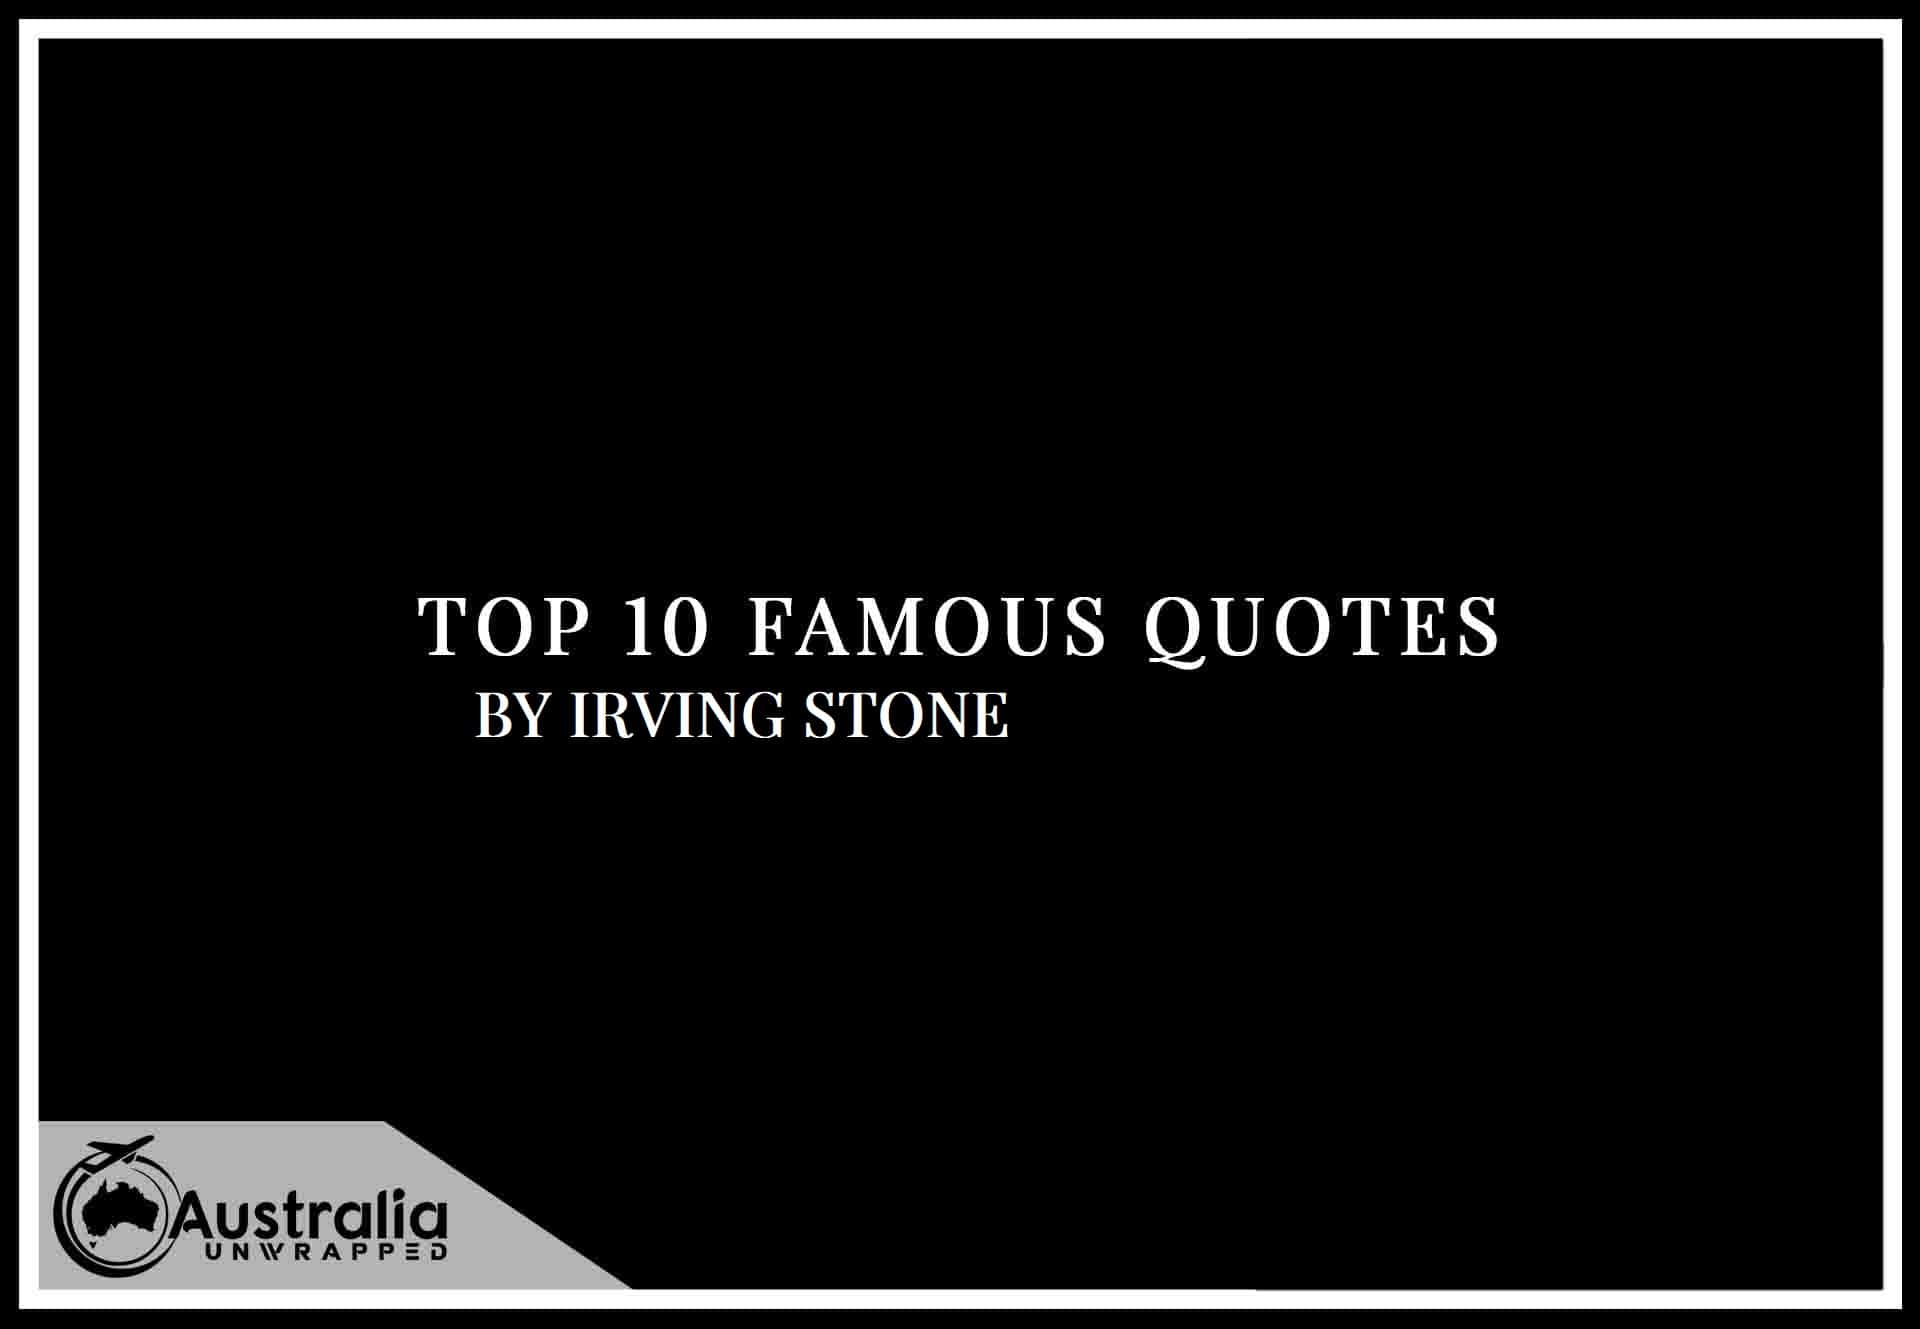 Top 10 Famous Quotes by Author Irving Stone